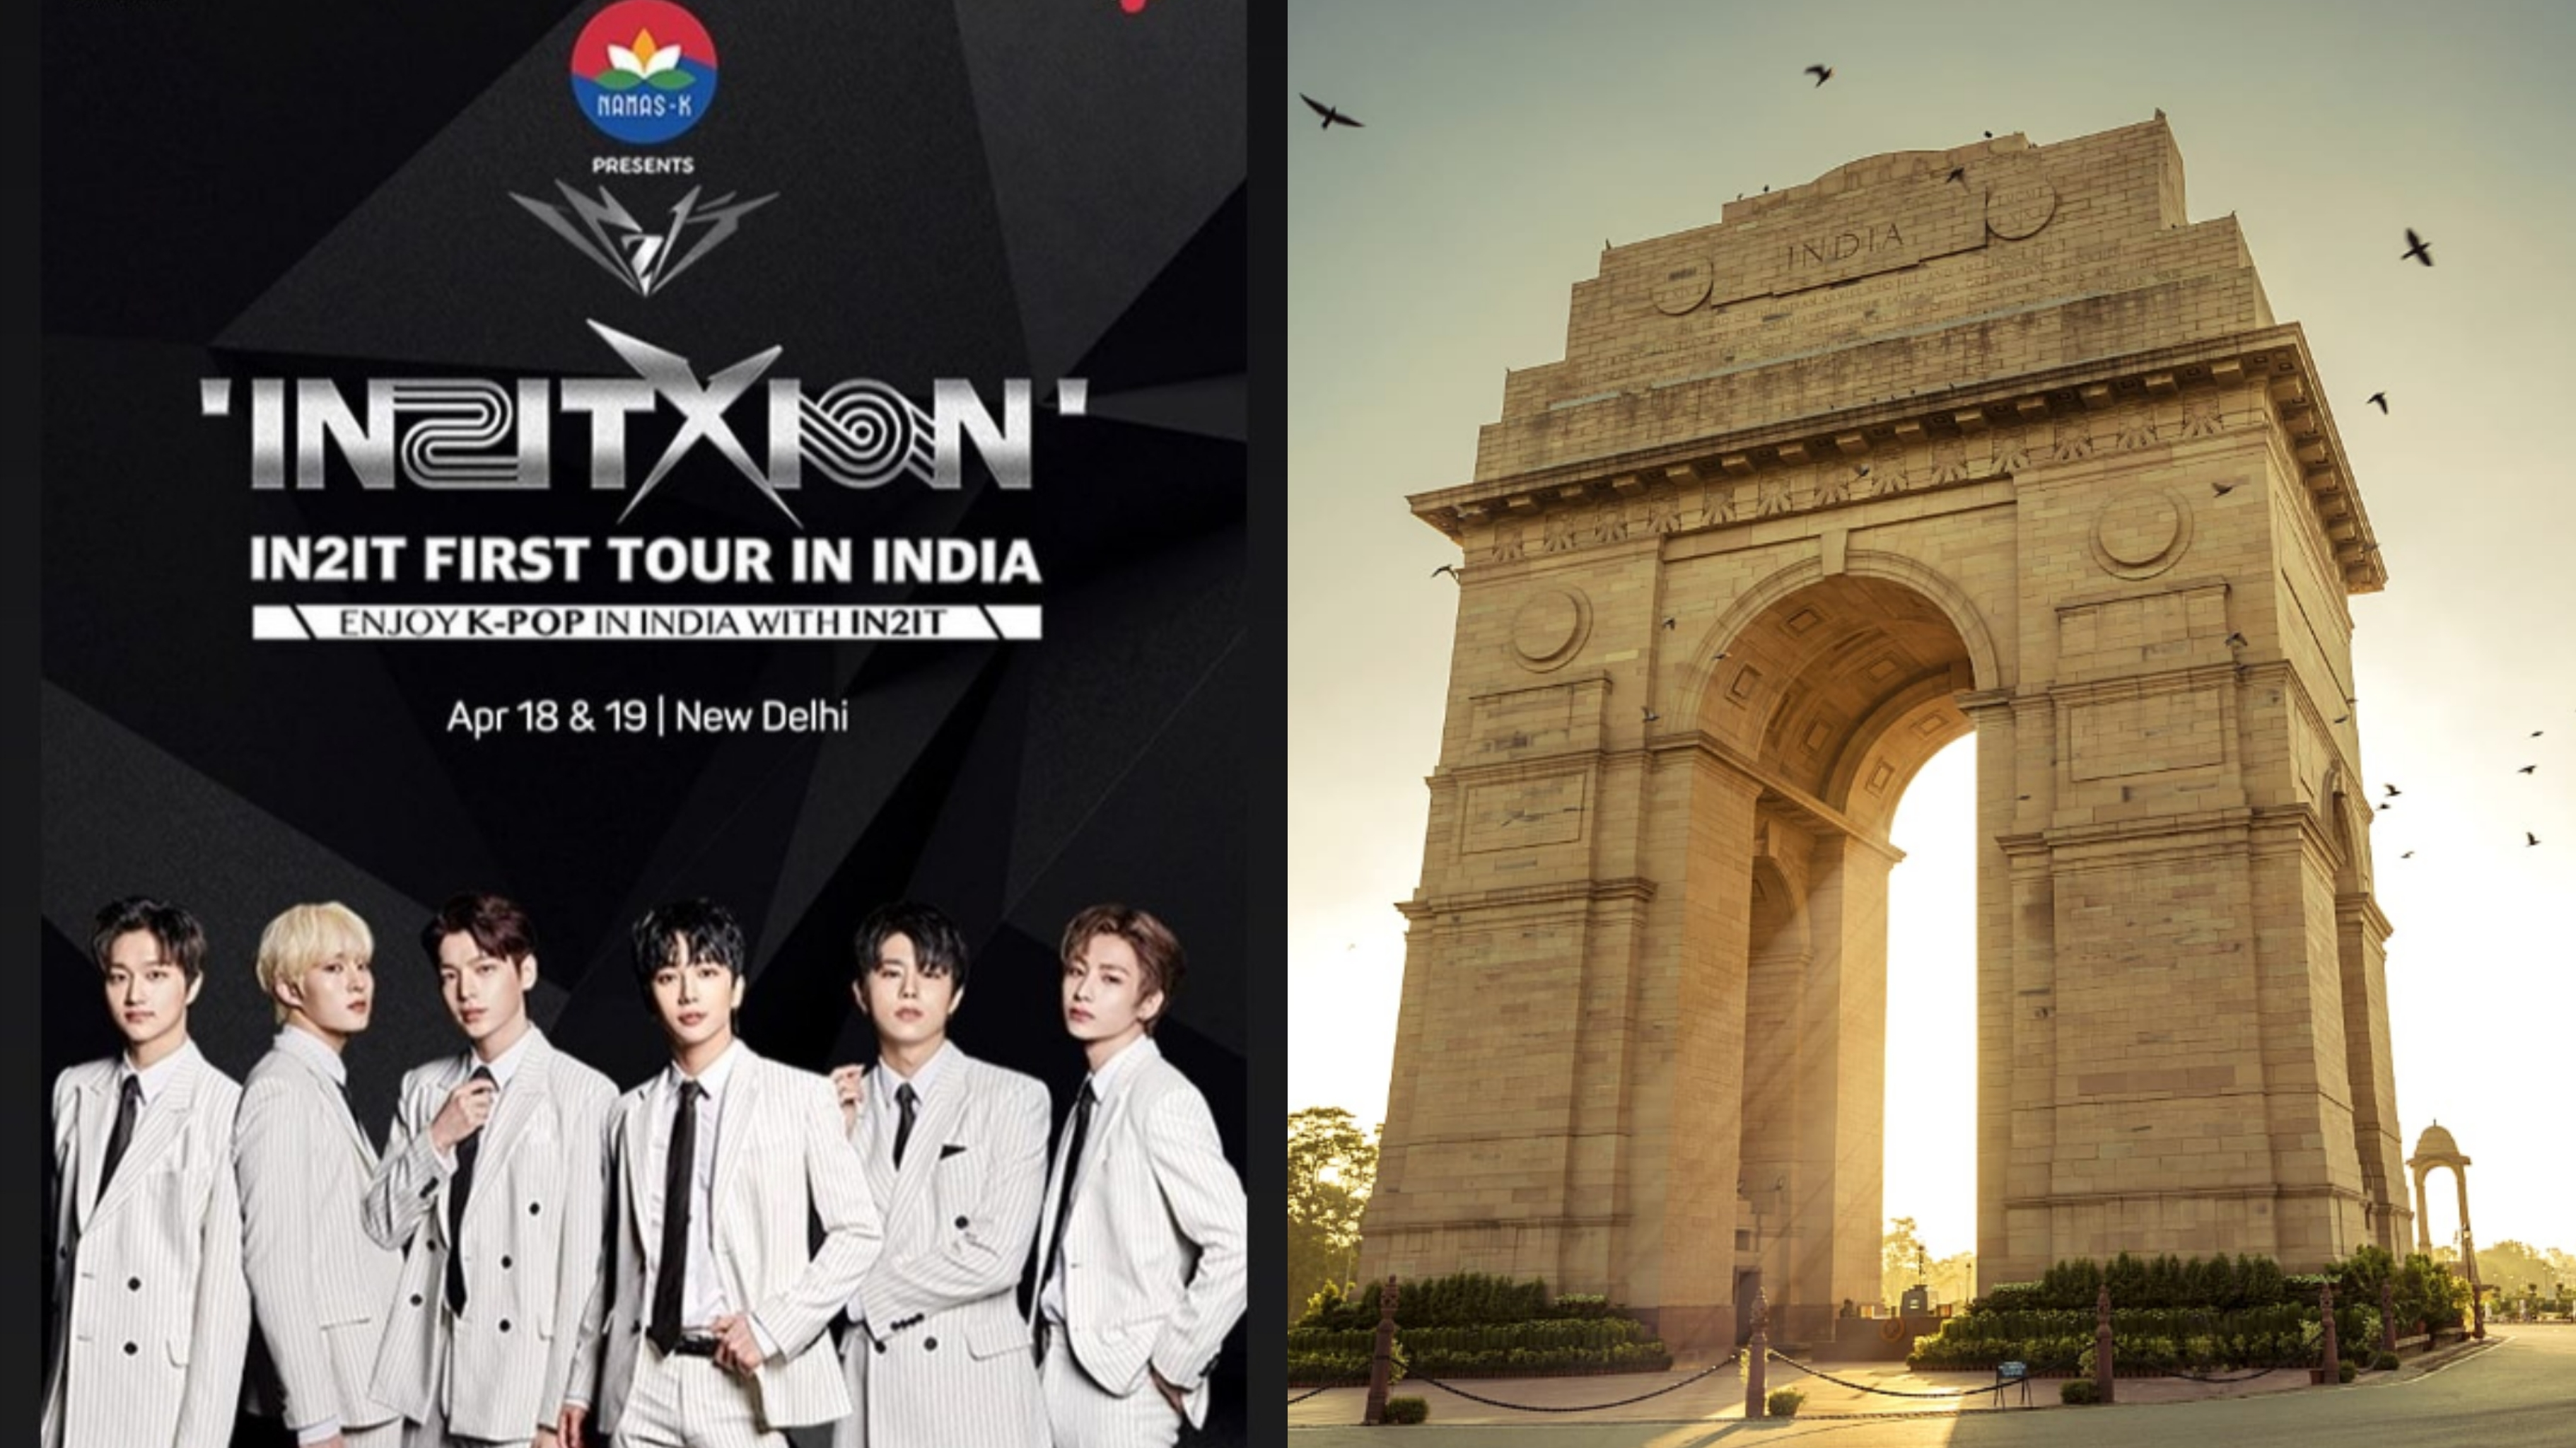 IN2IT concert in india